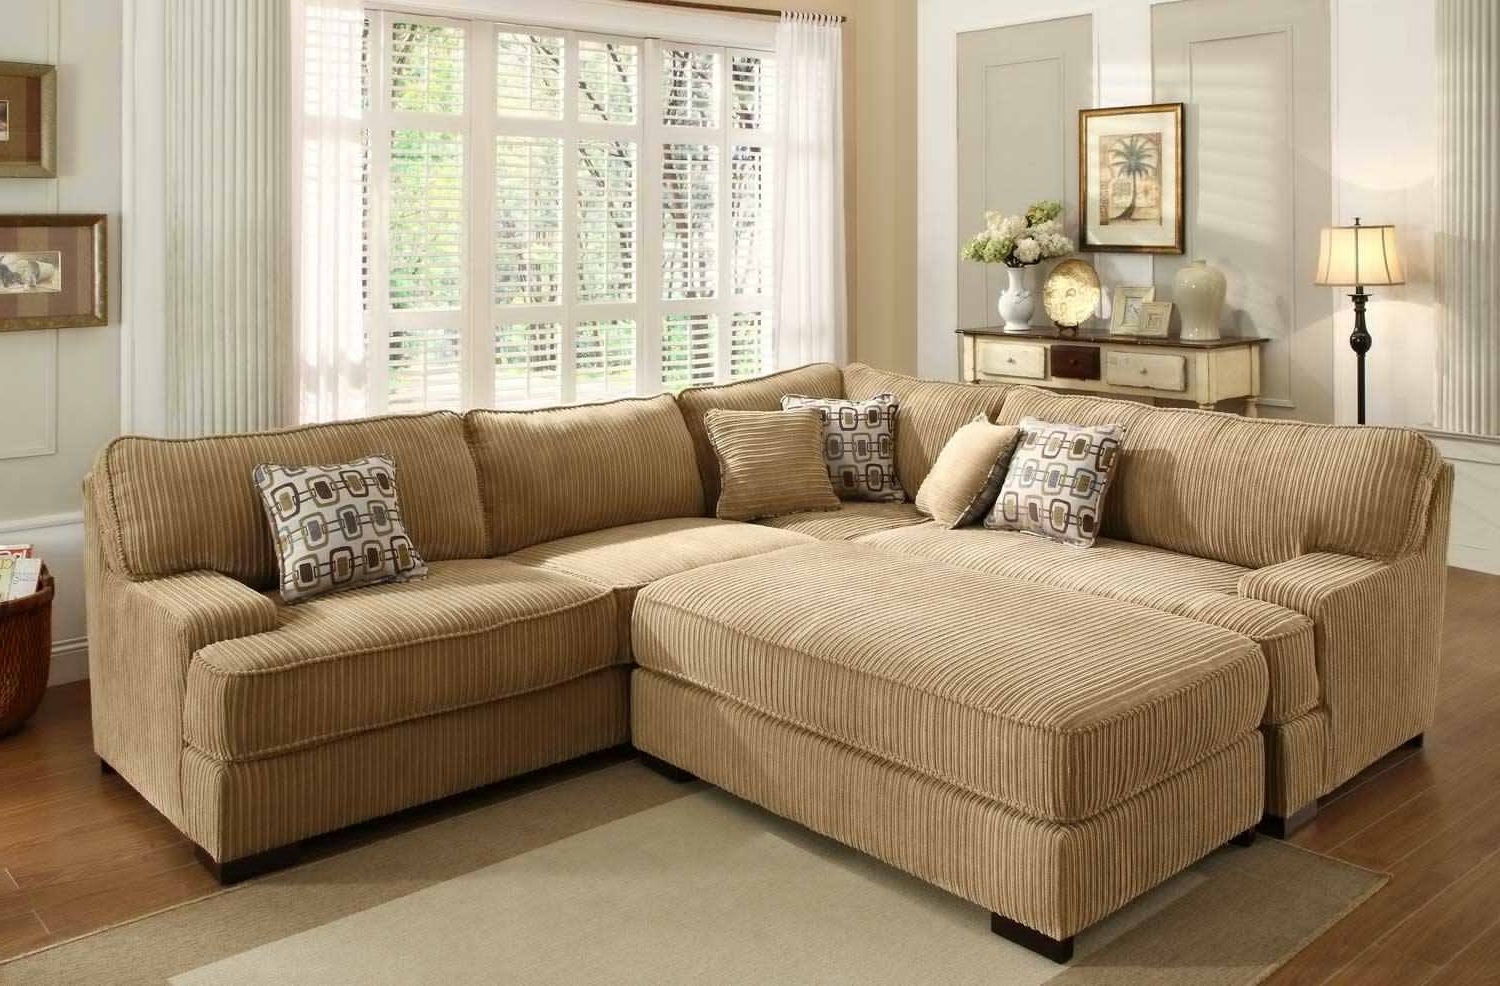 2017 Cozy Sectional Sofas With Regard To Sectional Sofa Design: Cozy Sectional Sofas Cheap Couch Recliner (View 8 of 15)